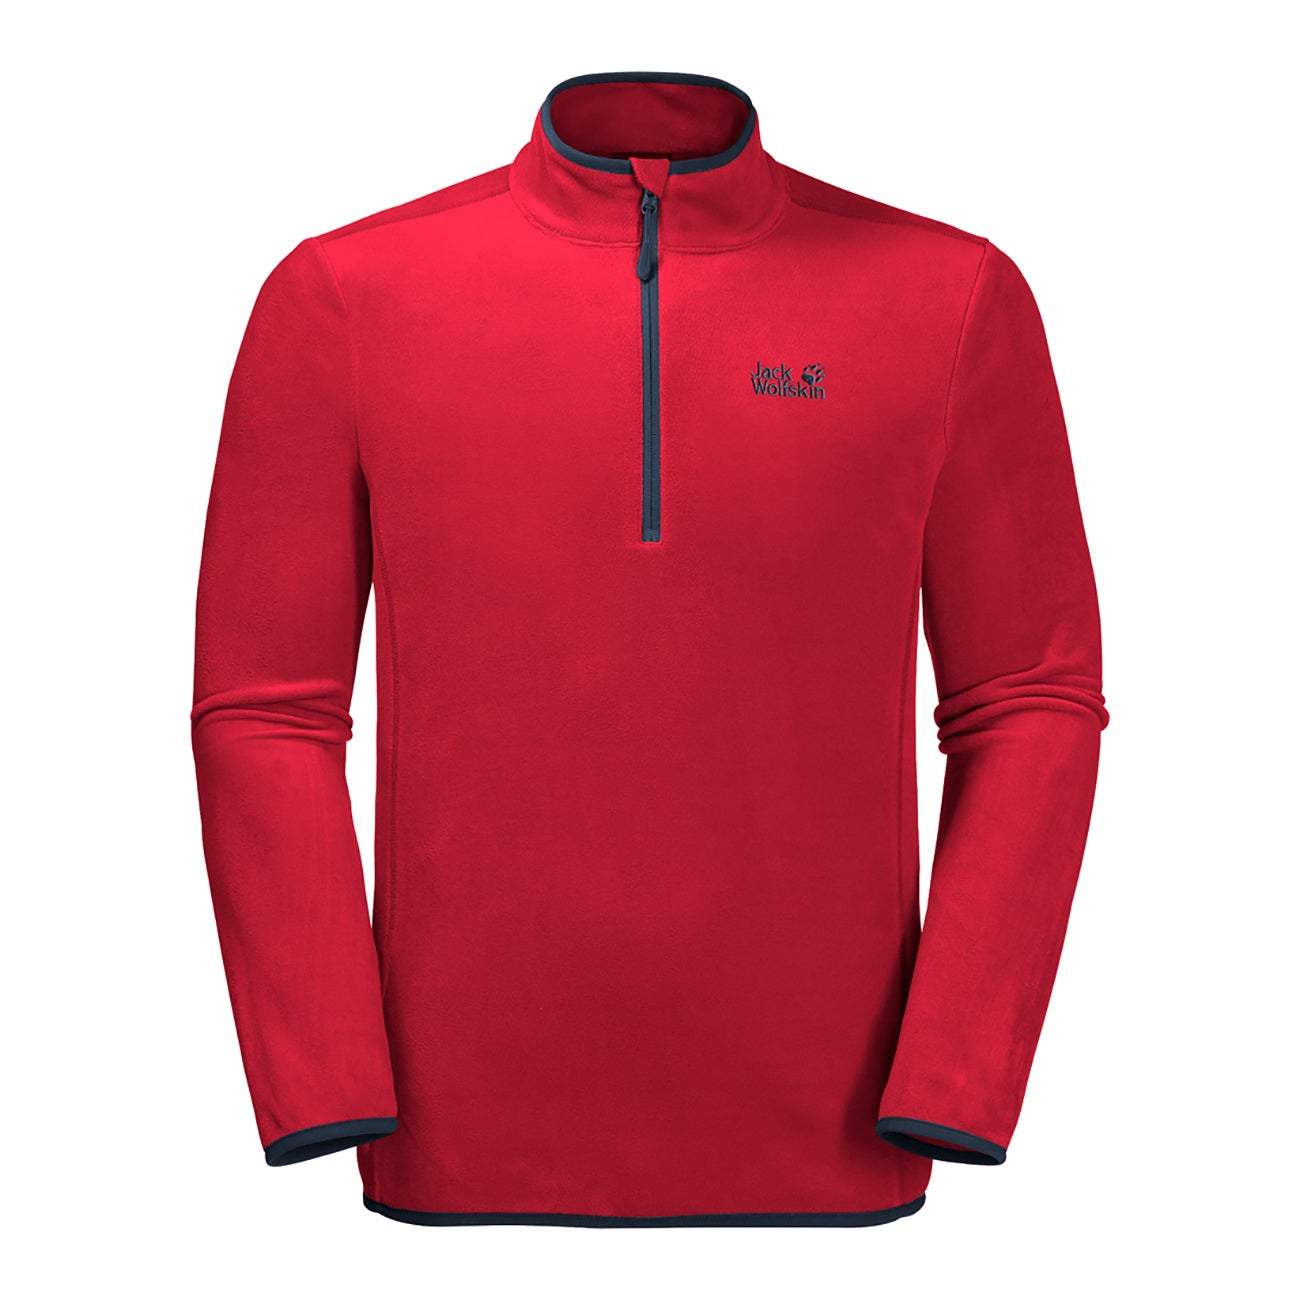 Details about Jack Wolfskin Echo Mens Jacket Fleece Red Lacquer All Sizes